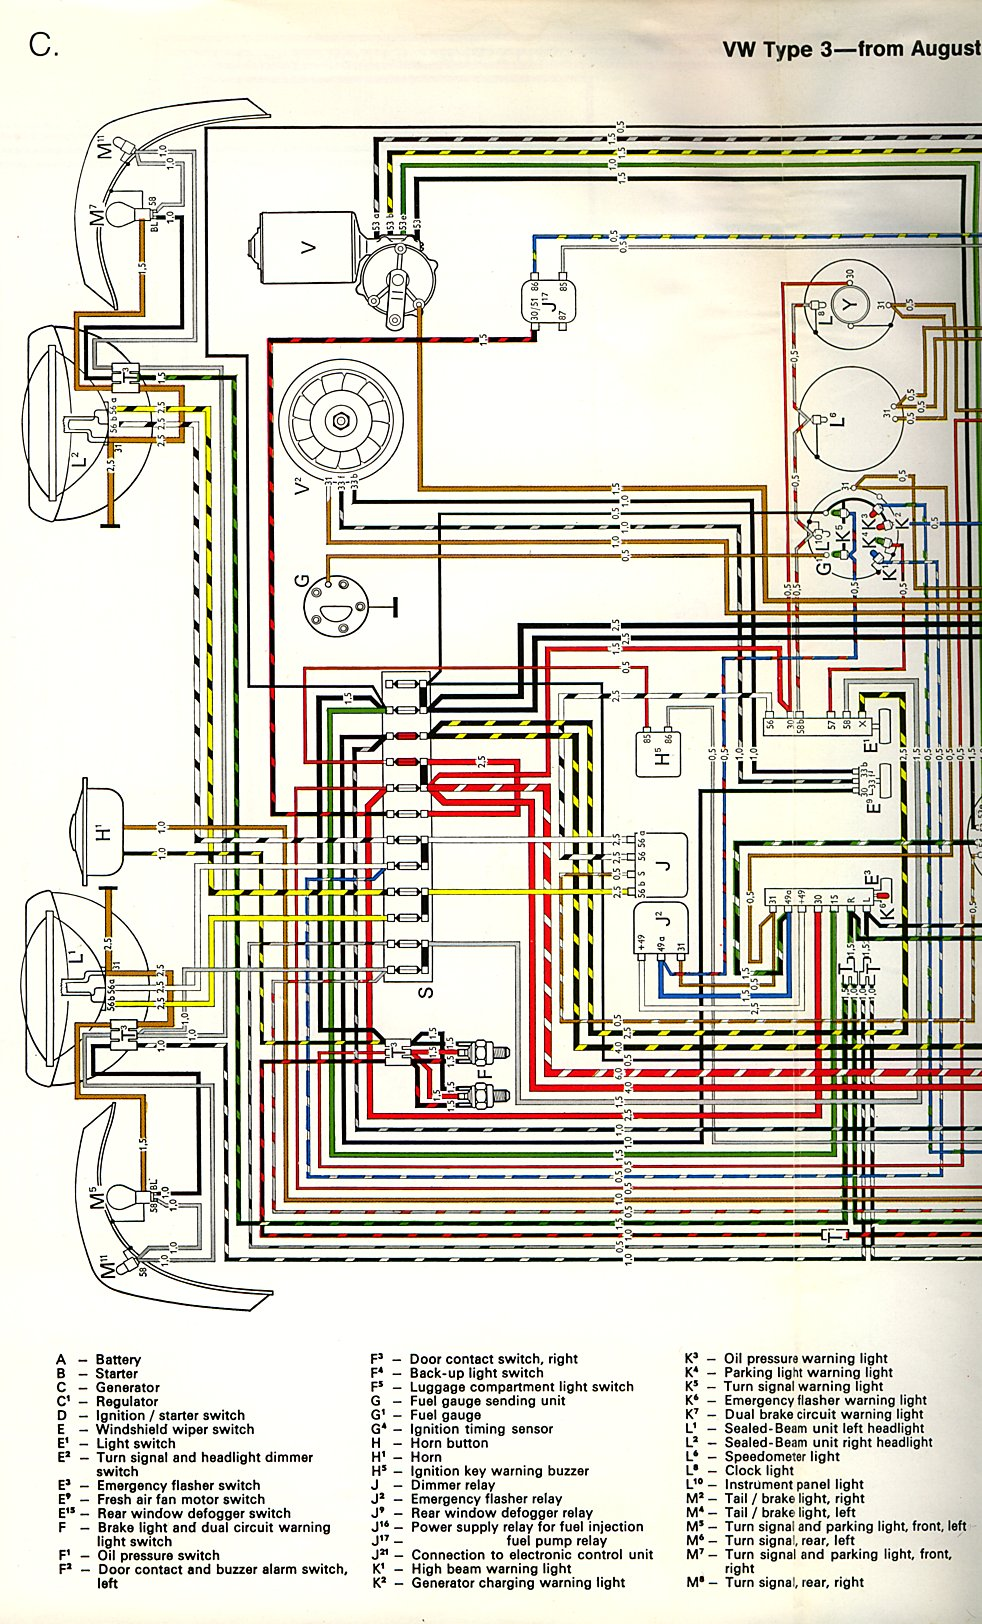 medium resolution of thesamba com type 3 wiring diagrams 1968 vw dash wiring vw type 3 wiring diagram